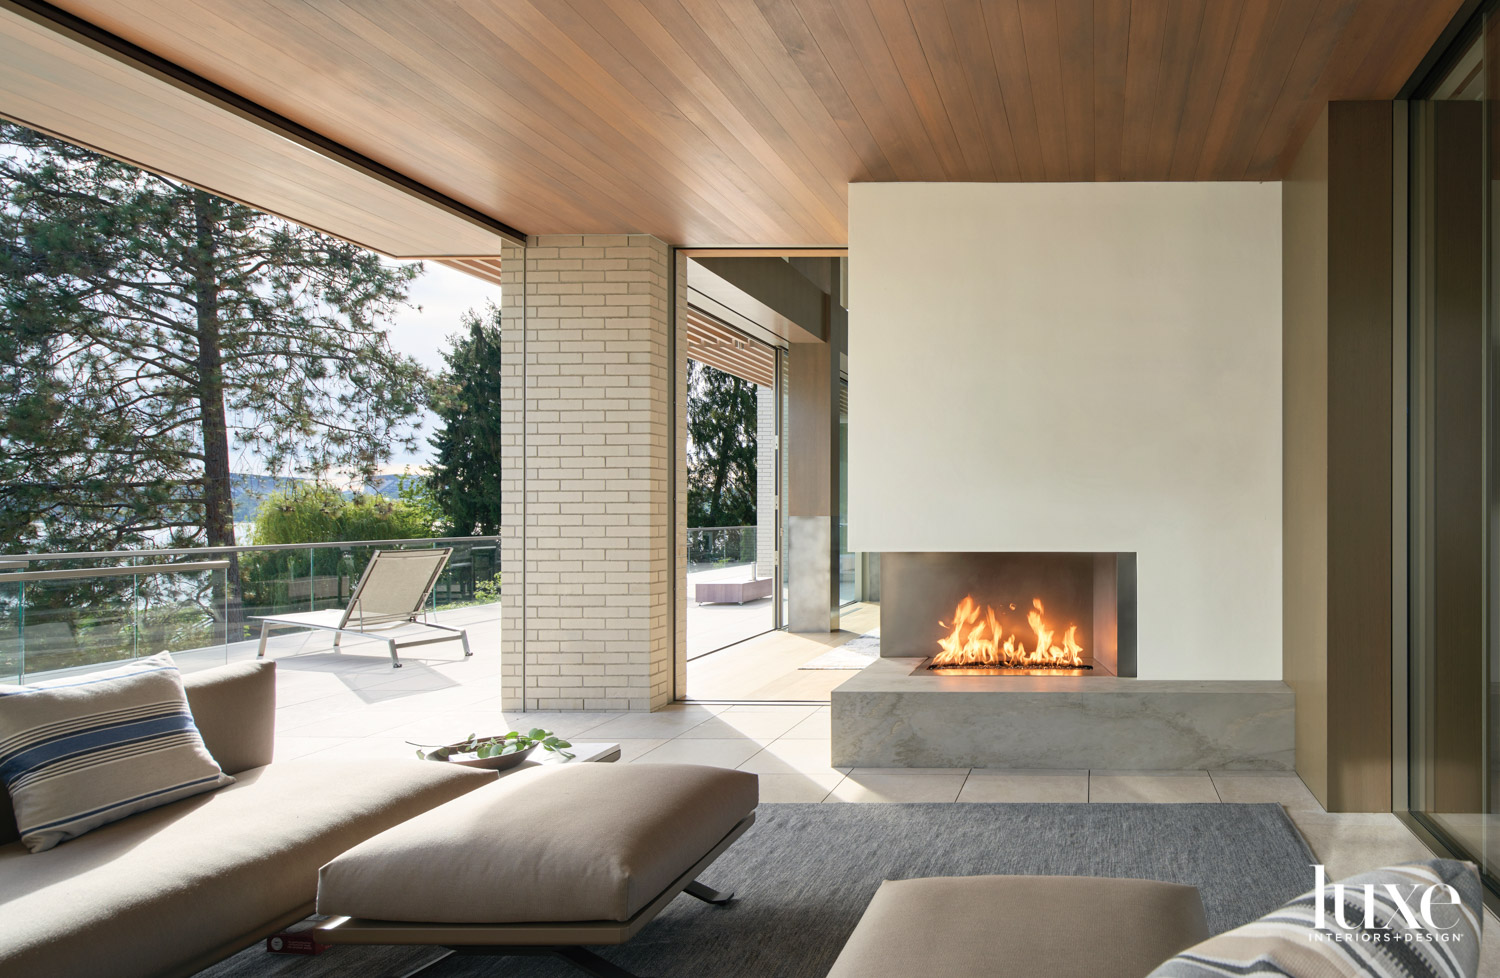 Covered outdoor seating area with...